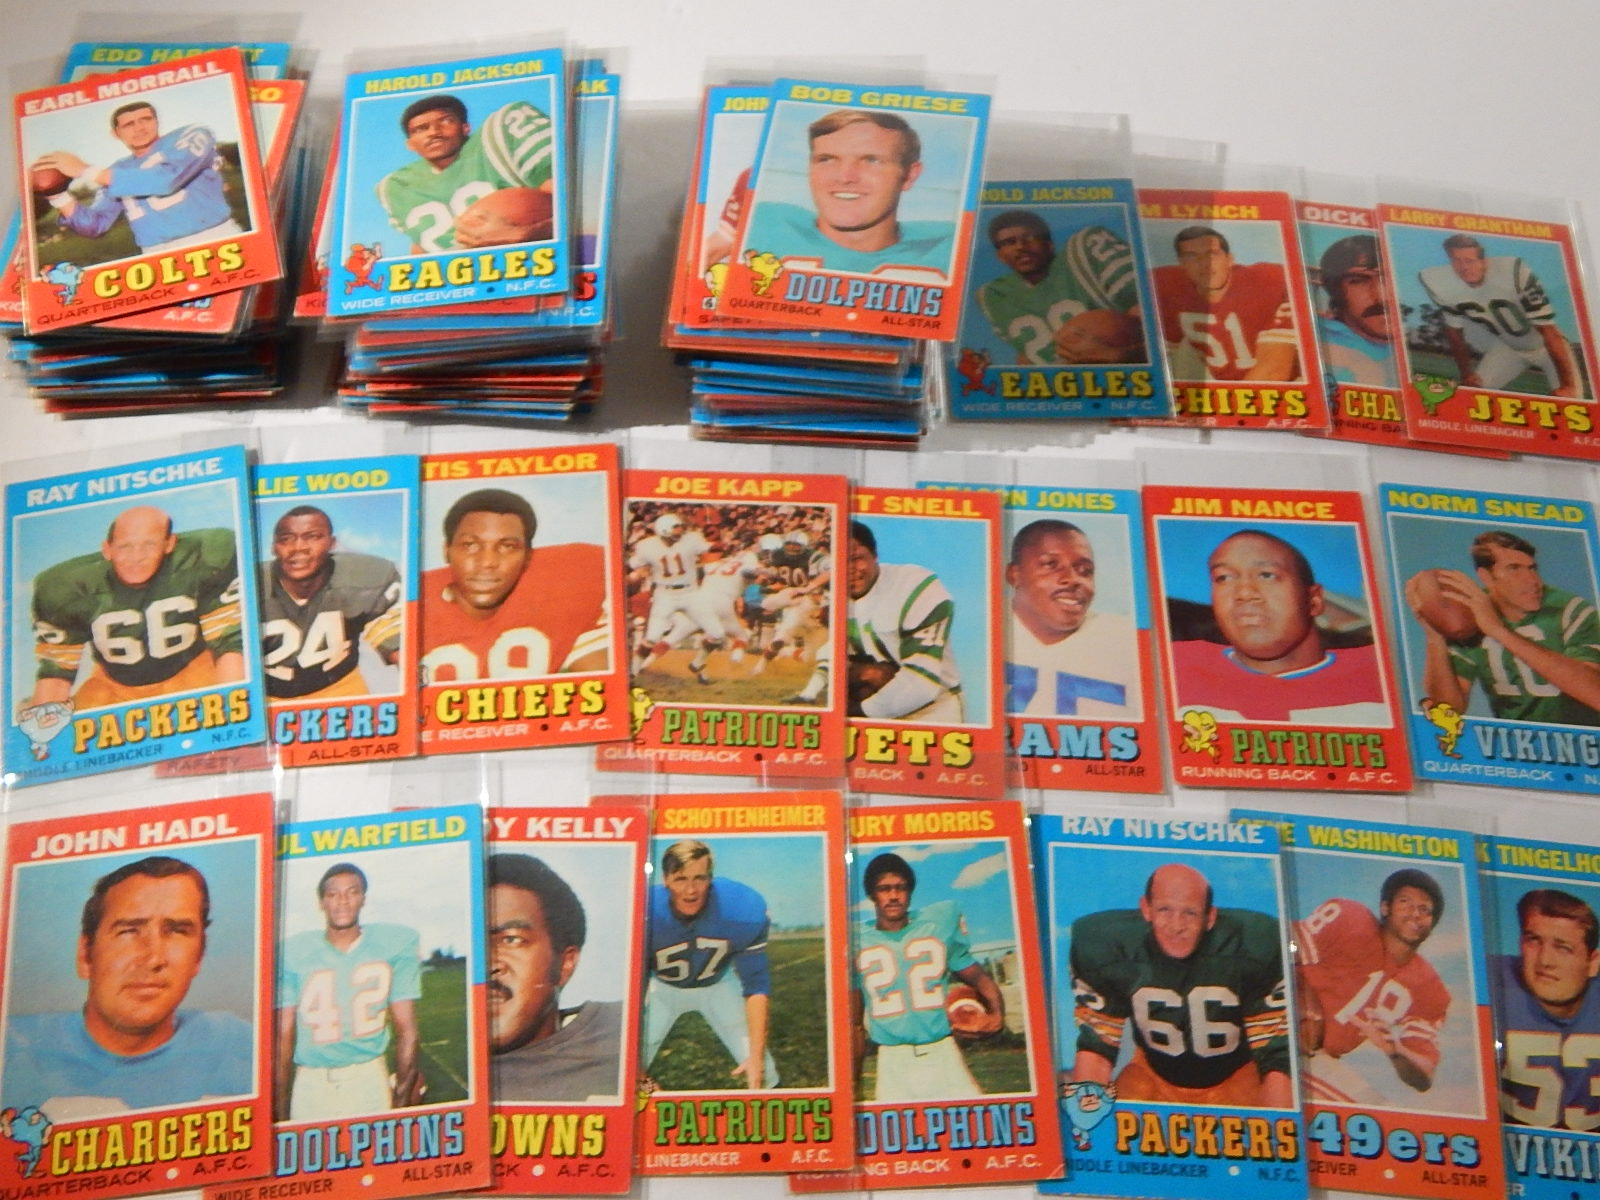 1971 Topps Football Card Collection - Around 150 Card Count